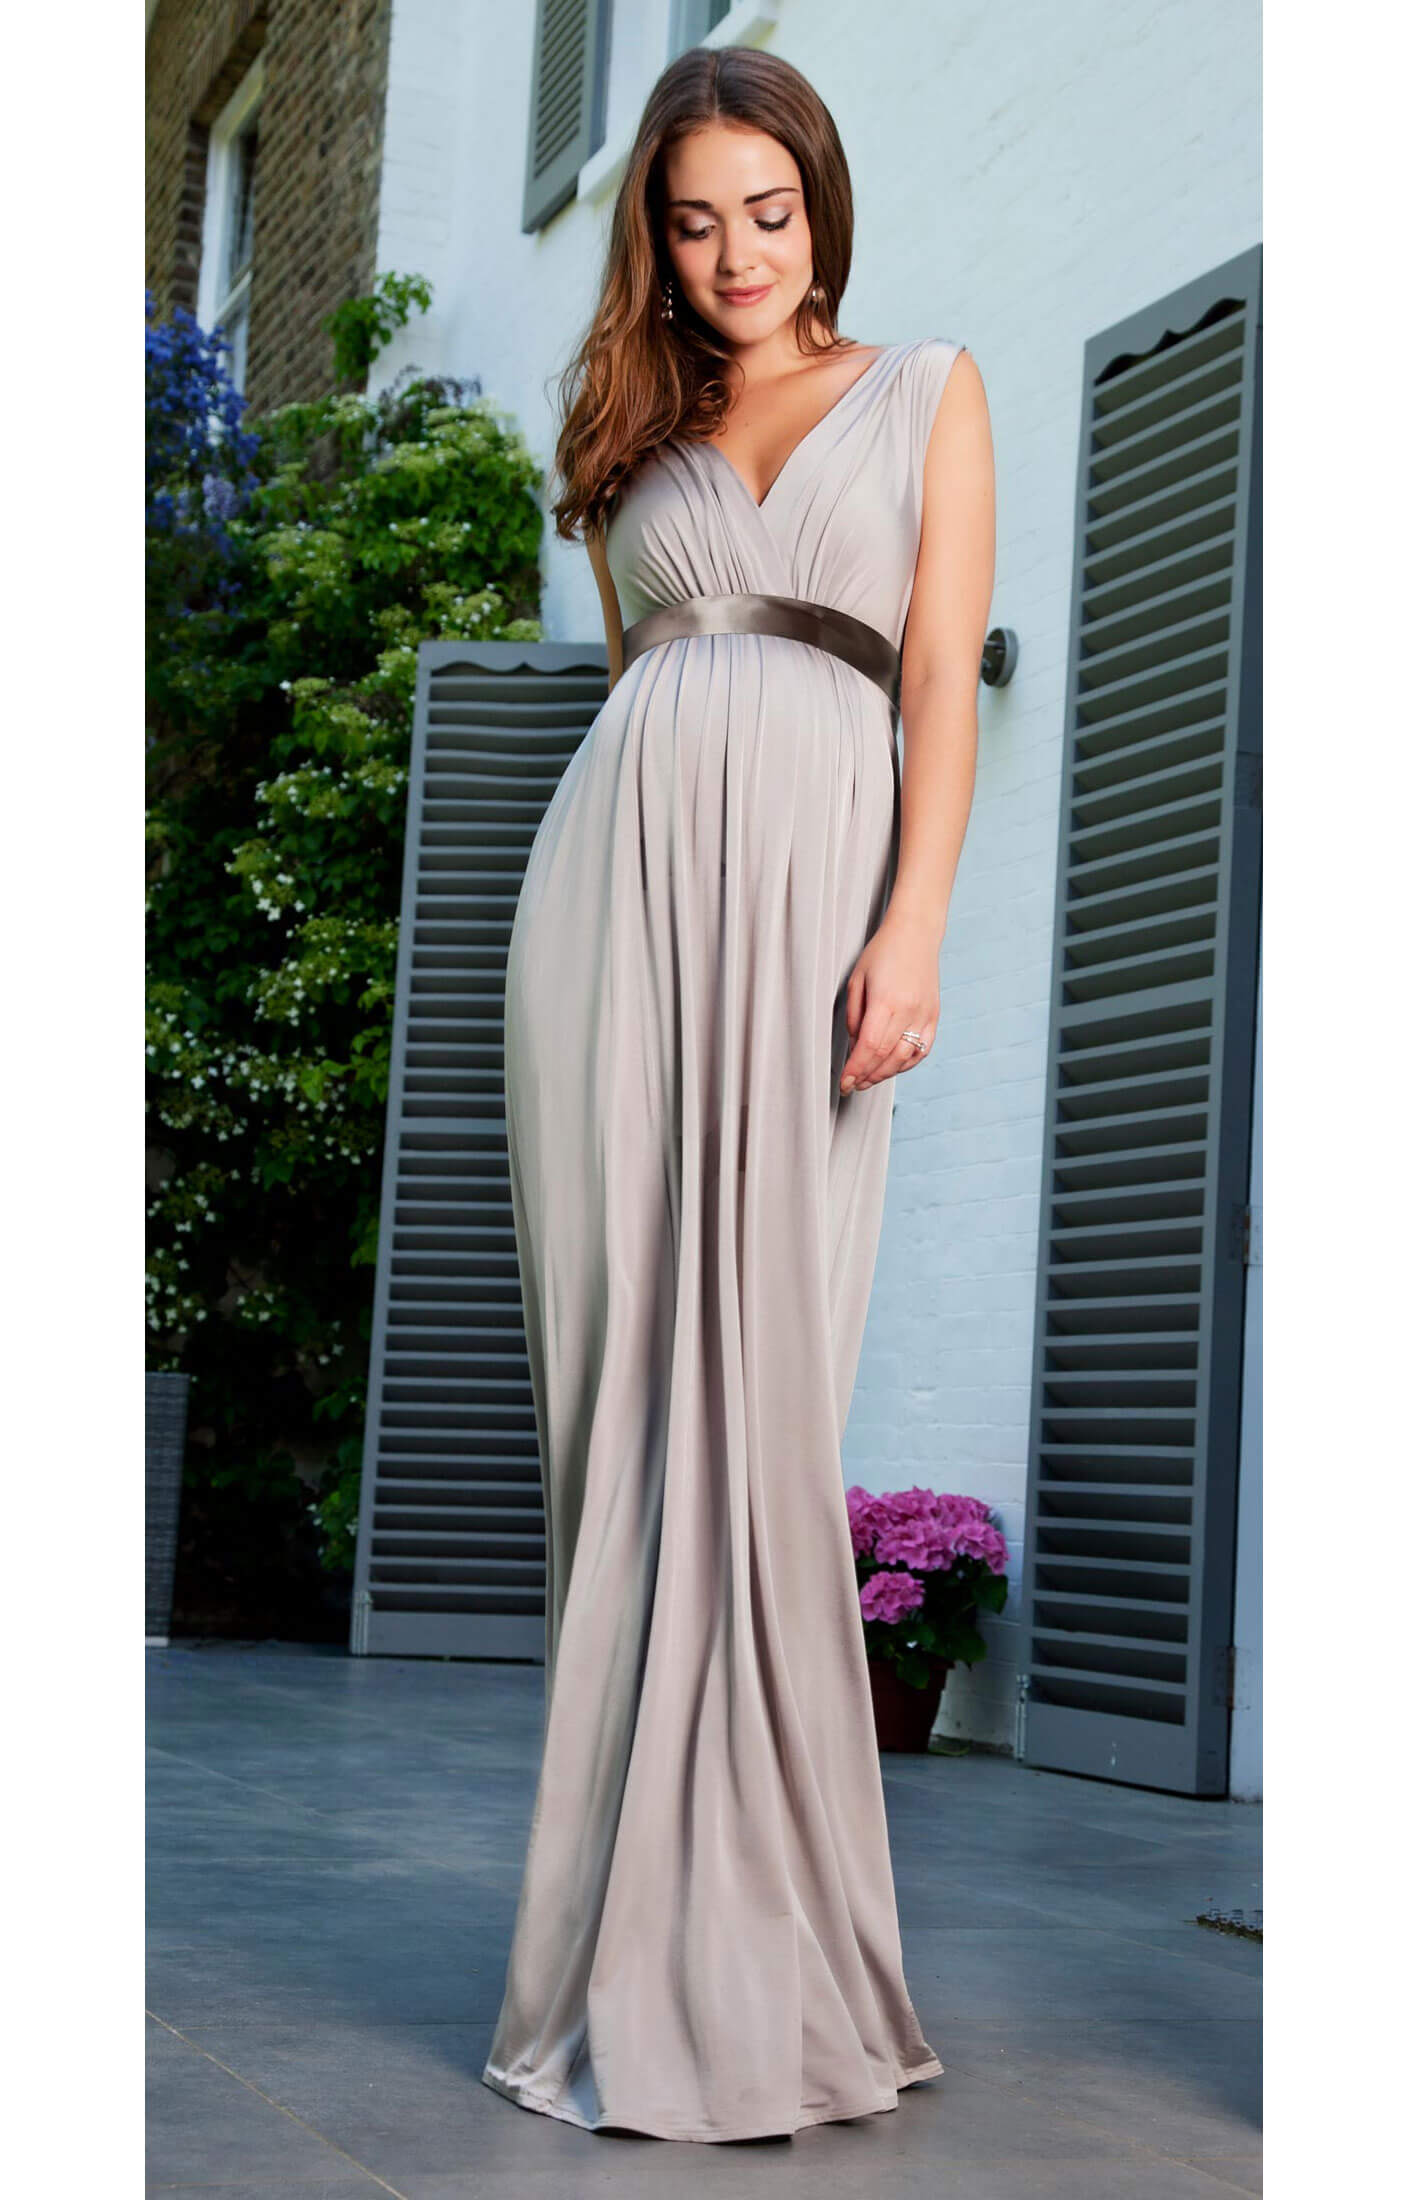 Anastasia maternity gown silver screen maternity wedding anastasia maternity gown silver screen maternity wedding dresses evening wear and party clothes by tiffany rose ombrellifo Images